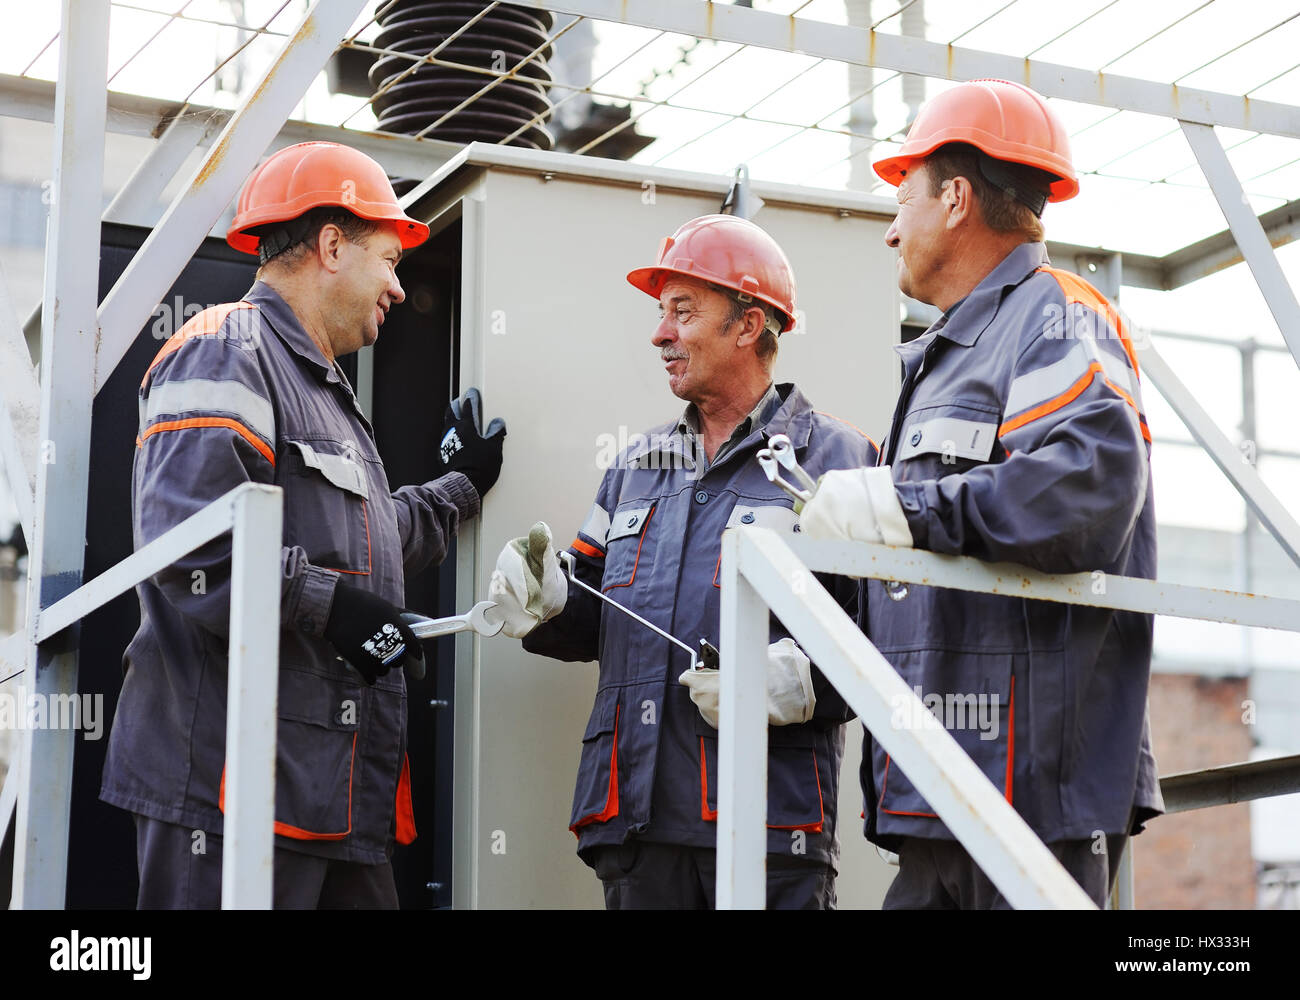 Electrical Engineer Equipment : Electrical engineer stock photos